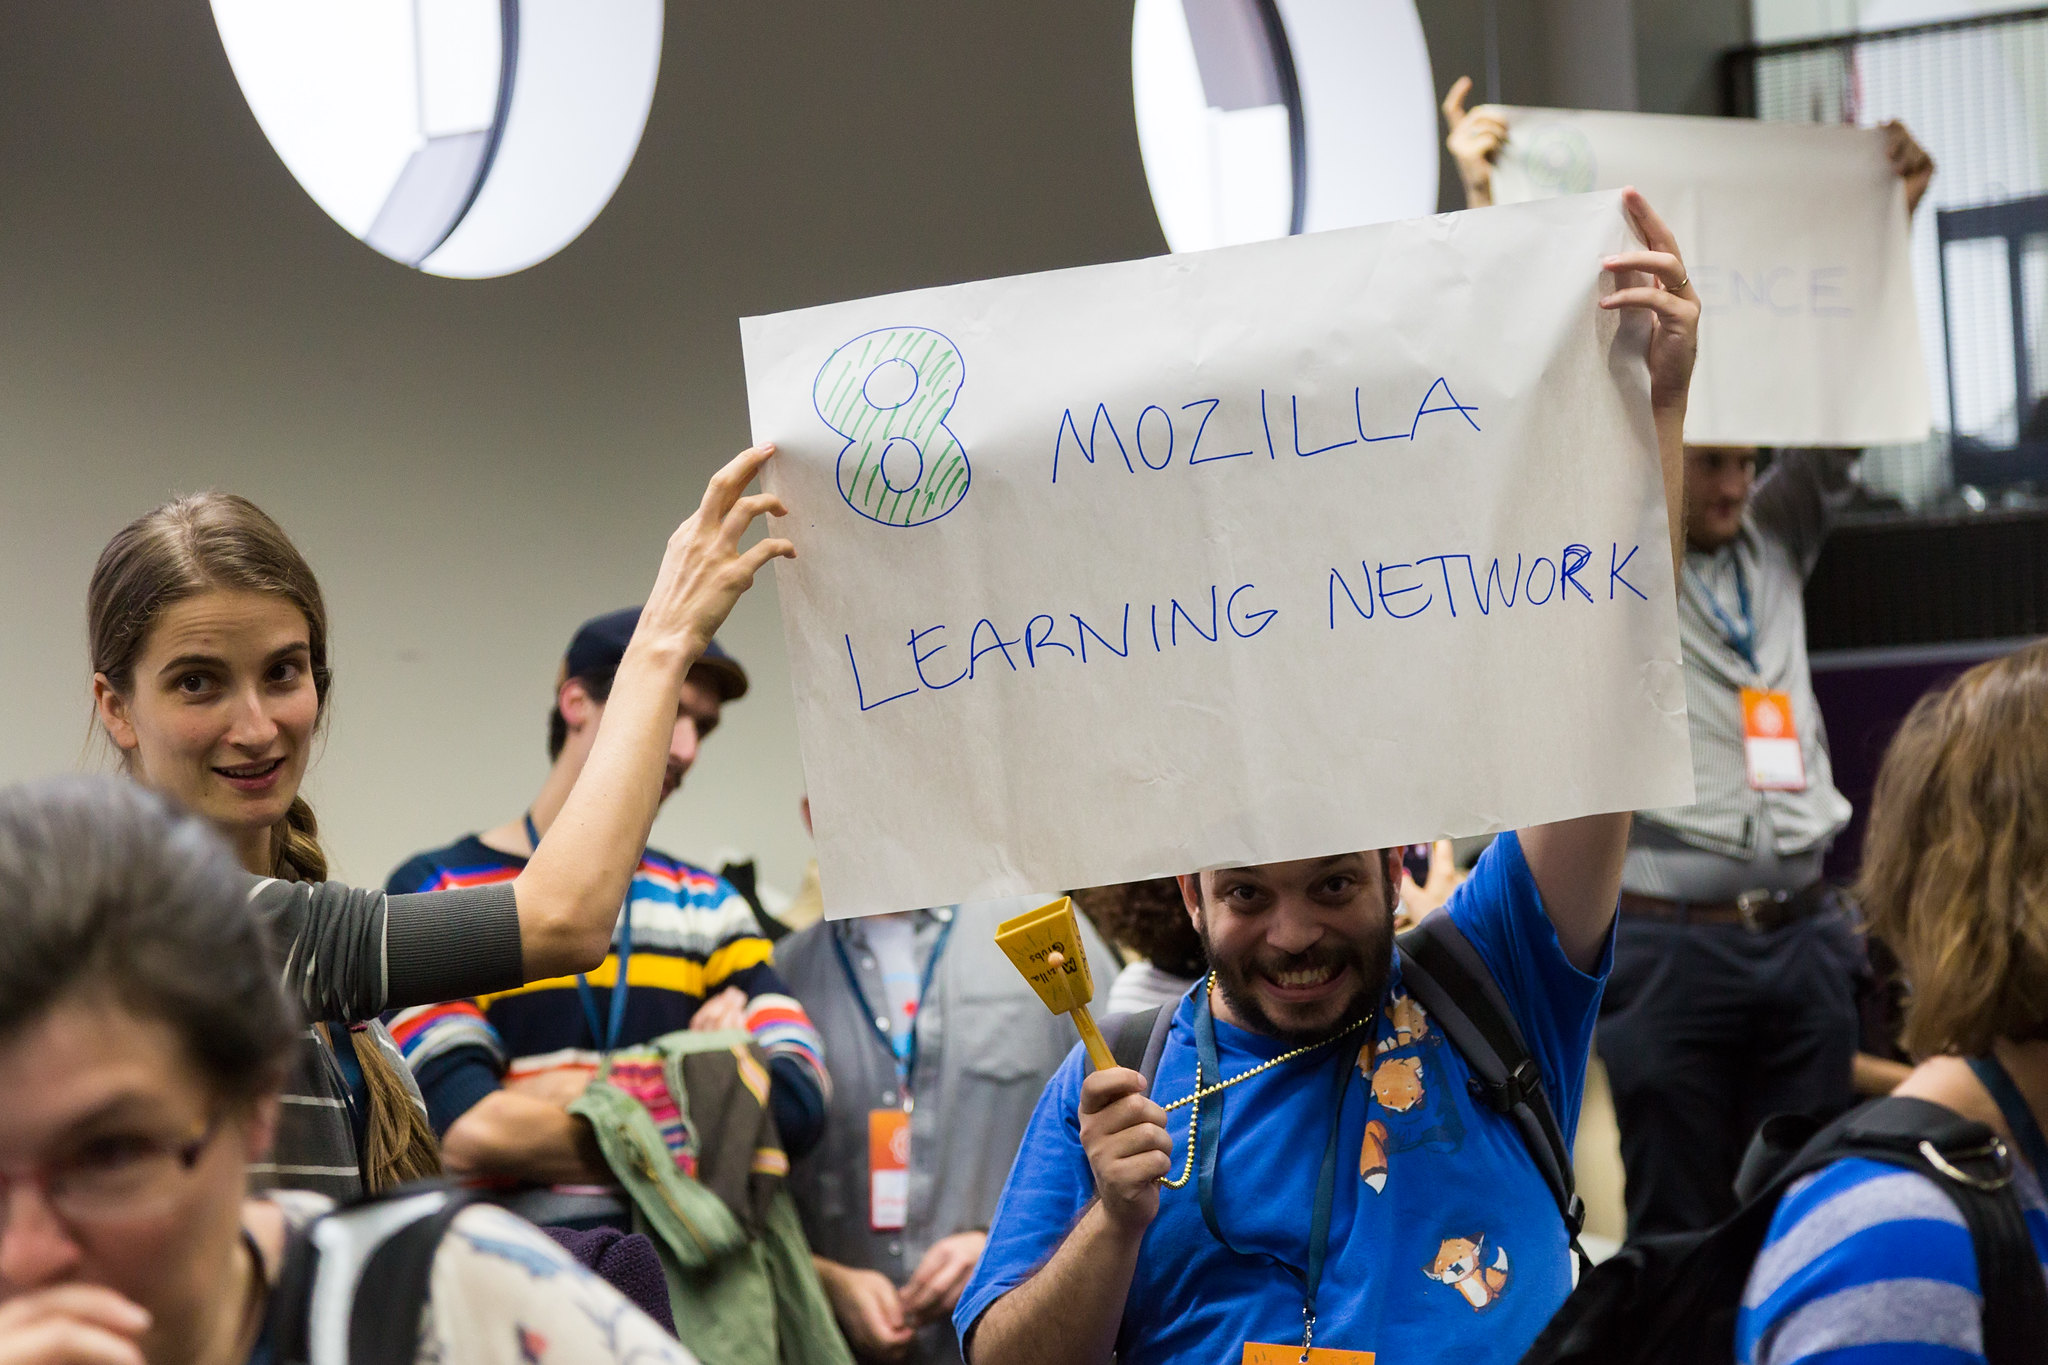 Mozilla Learning Networks